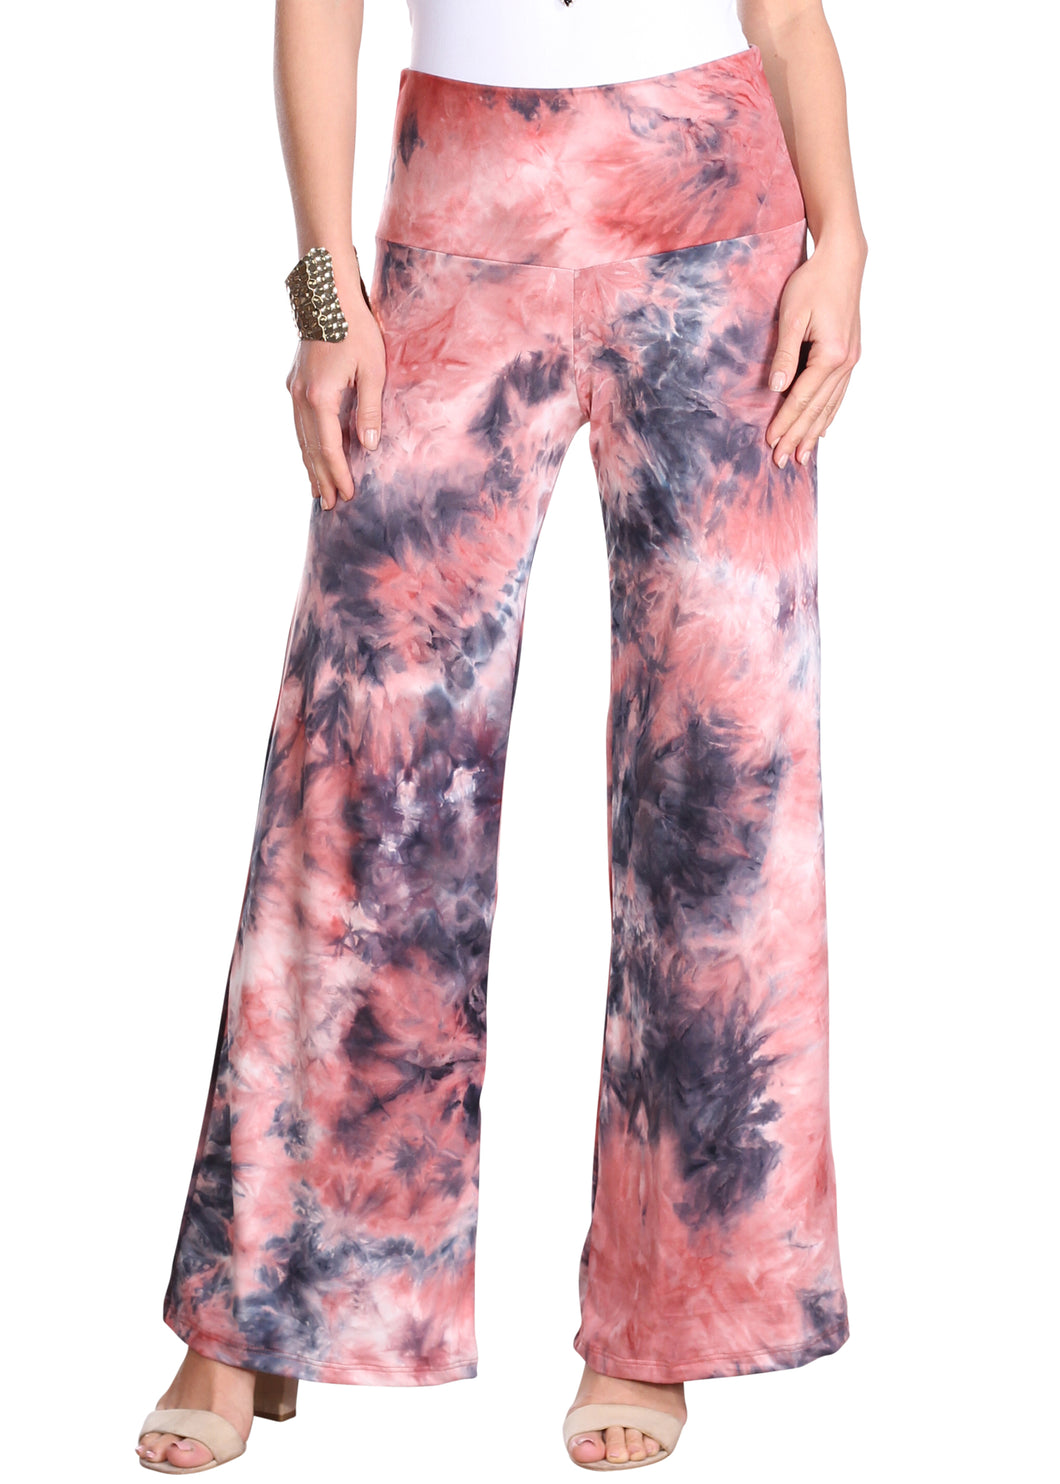 DT37 Fold Over Printed Palazzo Pants